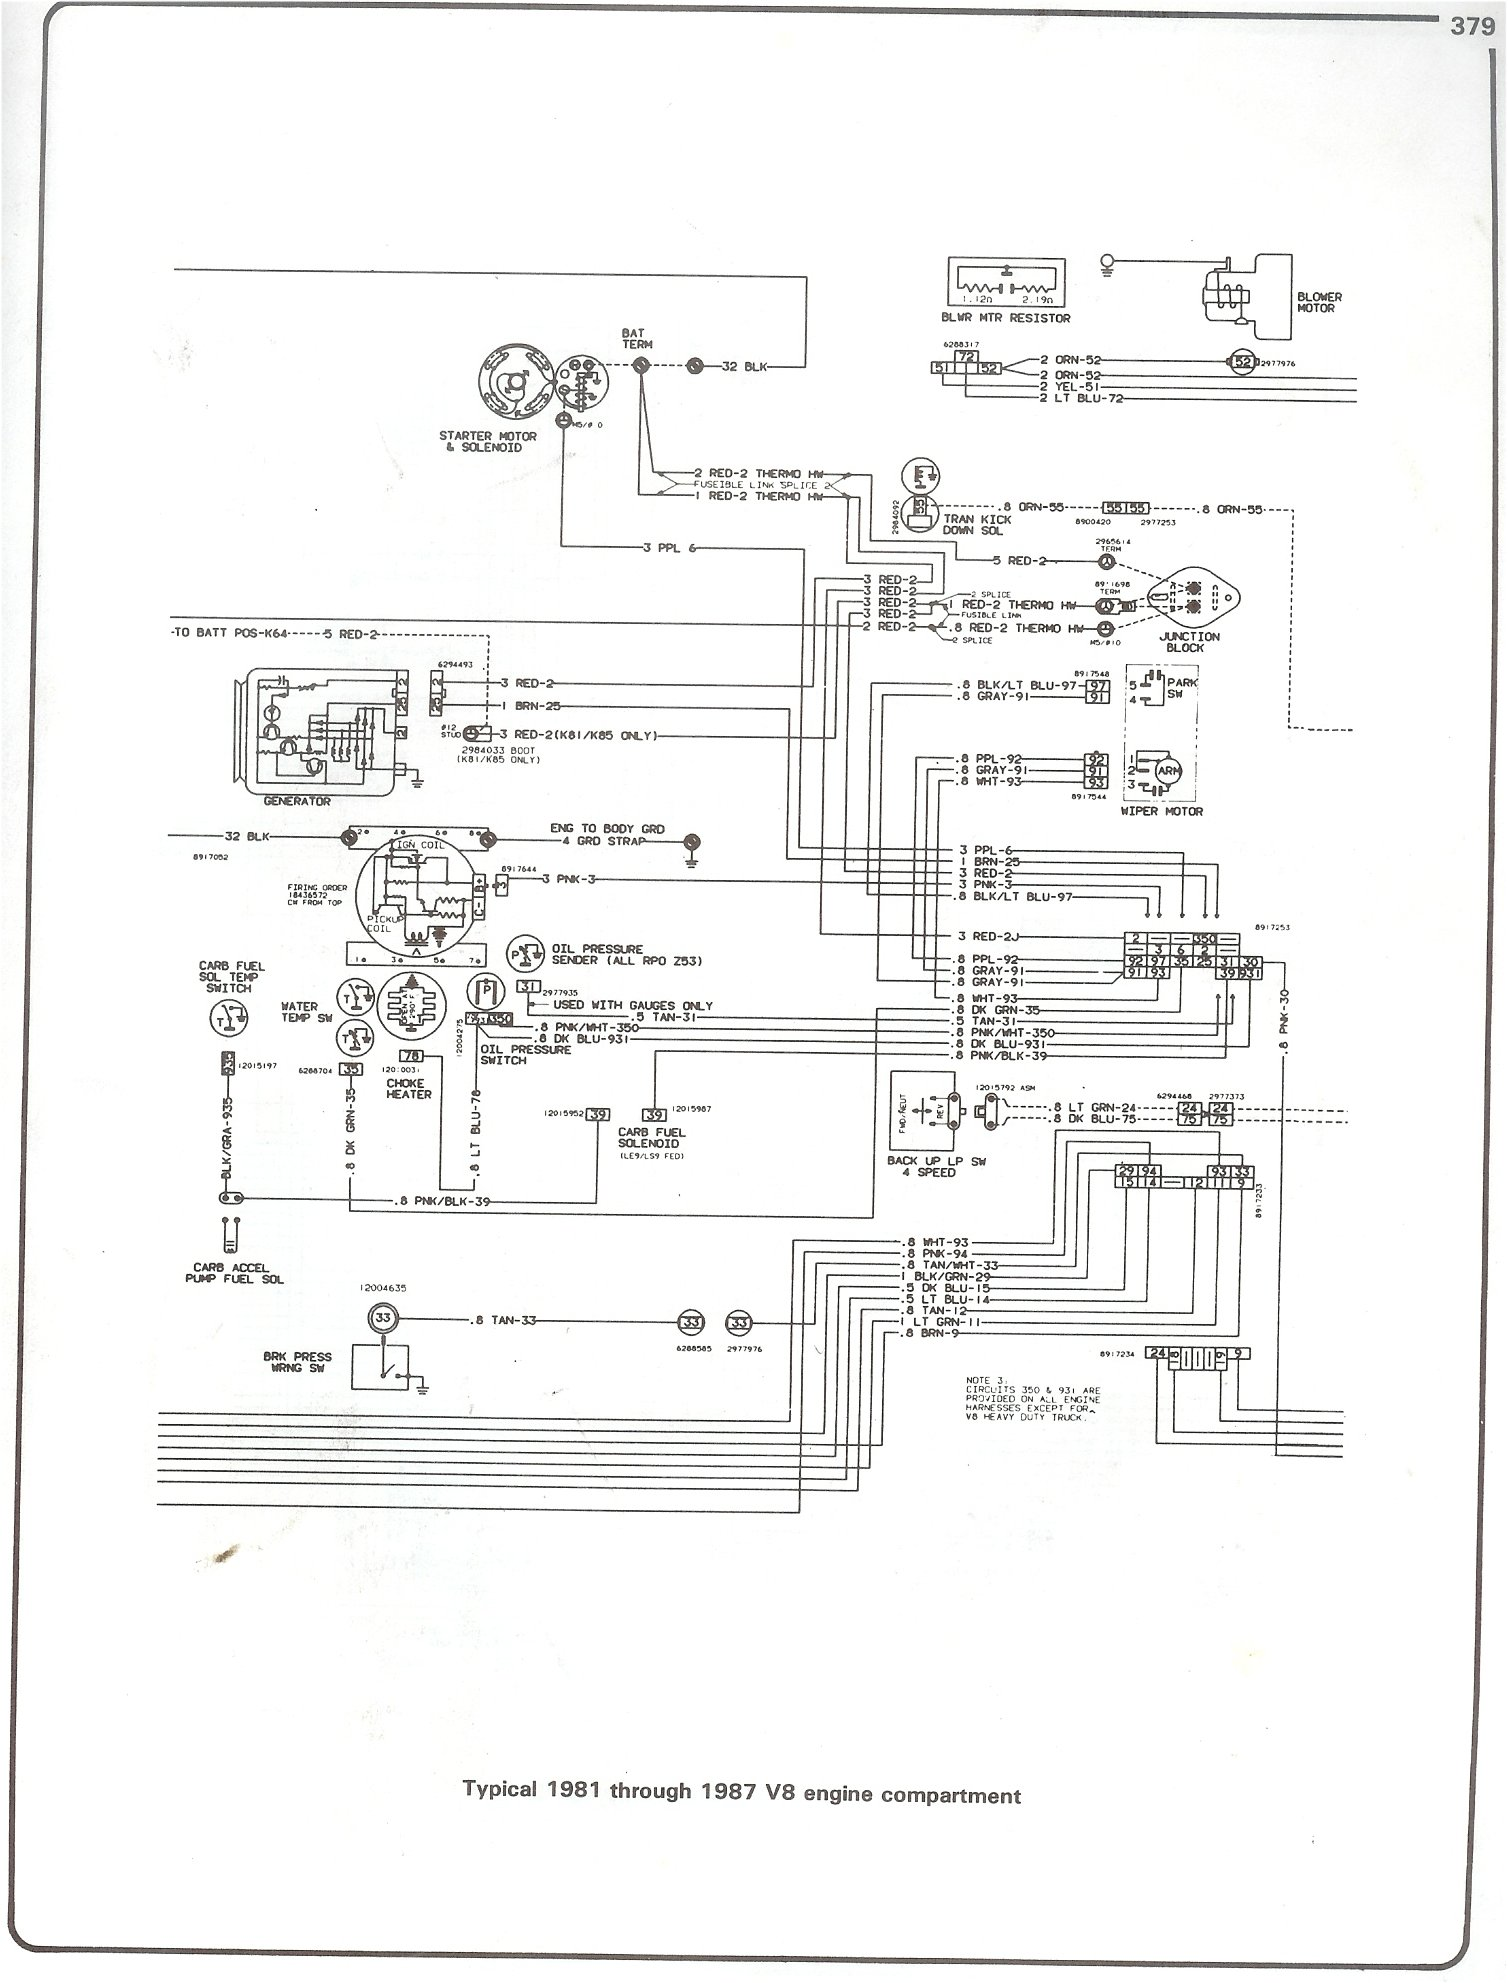 1976 Chevy Air Conditioning Diagram Wiring Schematic - Grand Wagoneer Wiring  Diagram Coil for Wiring Diagram SchematicsWiring Diagram Schematics